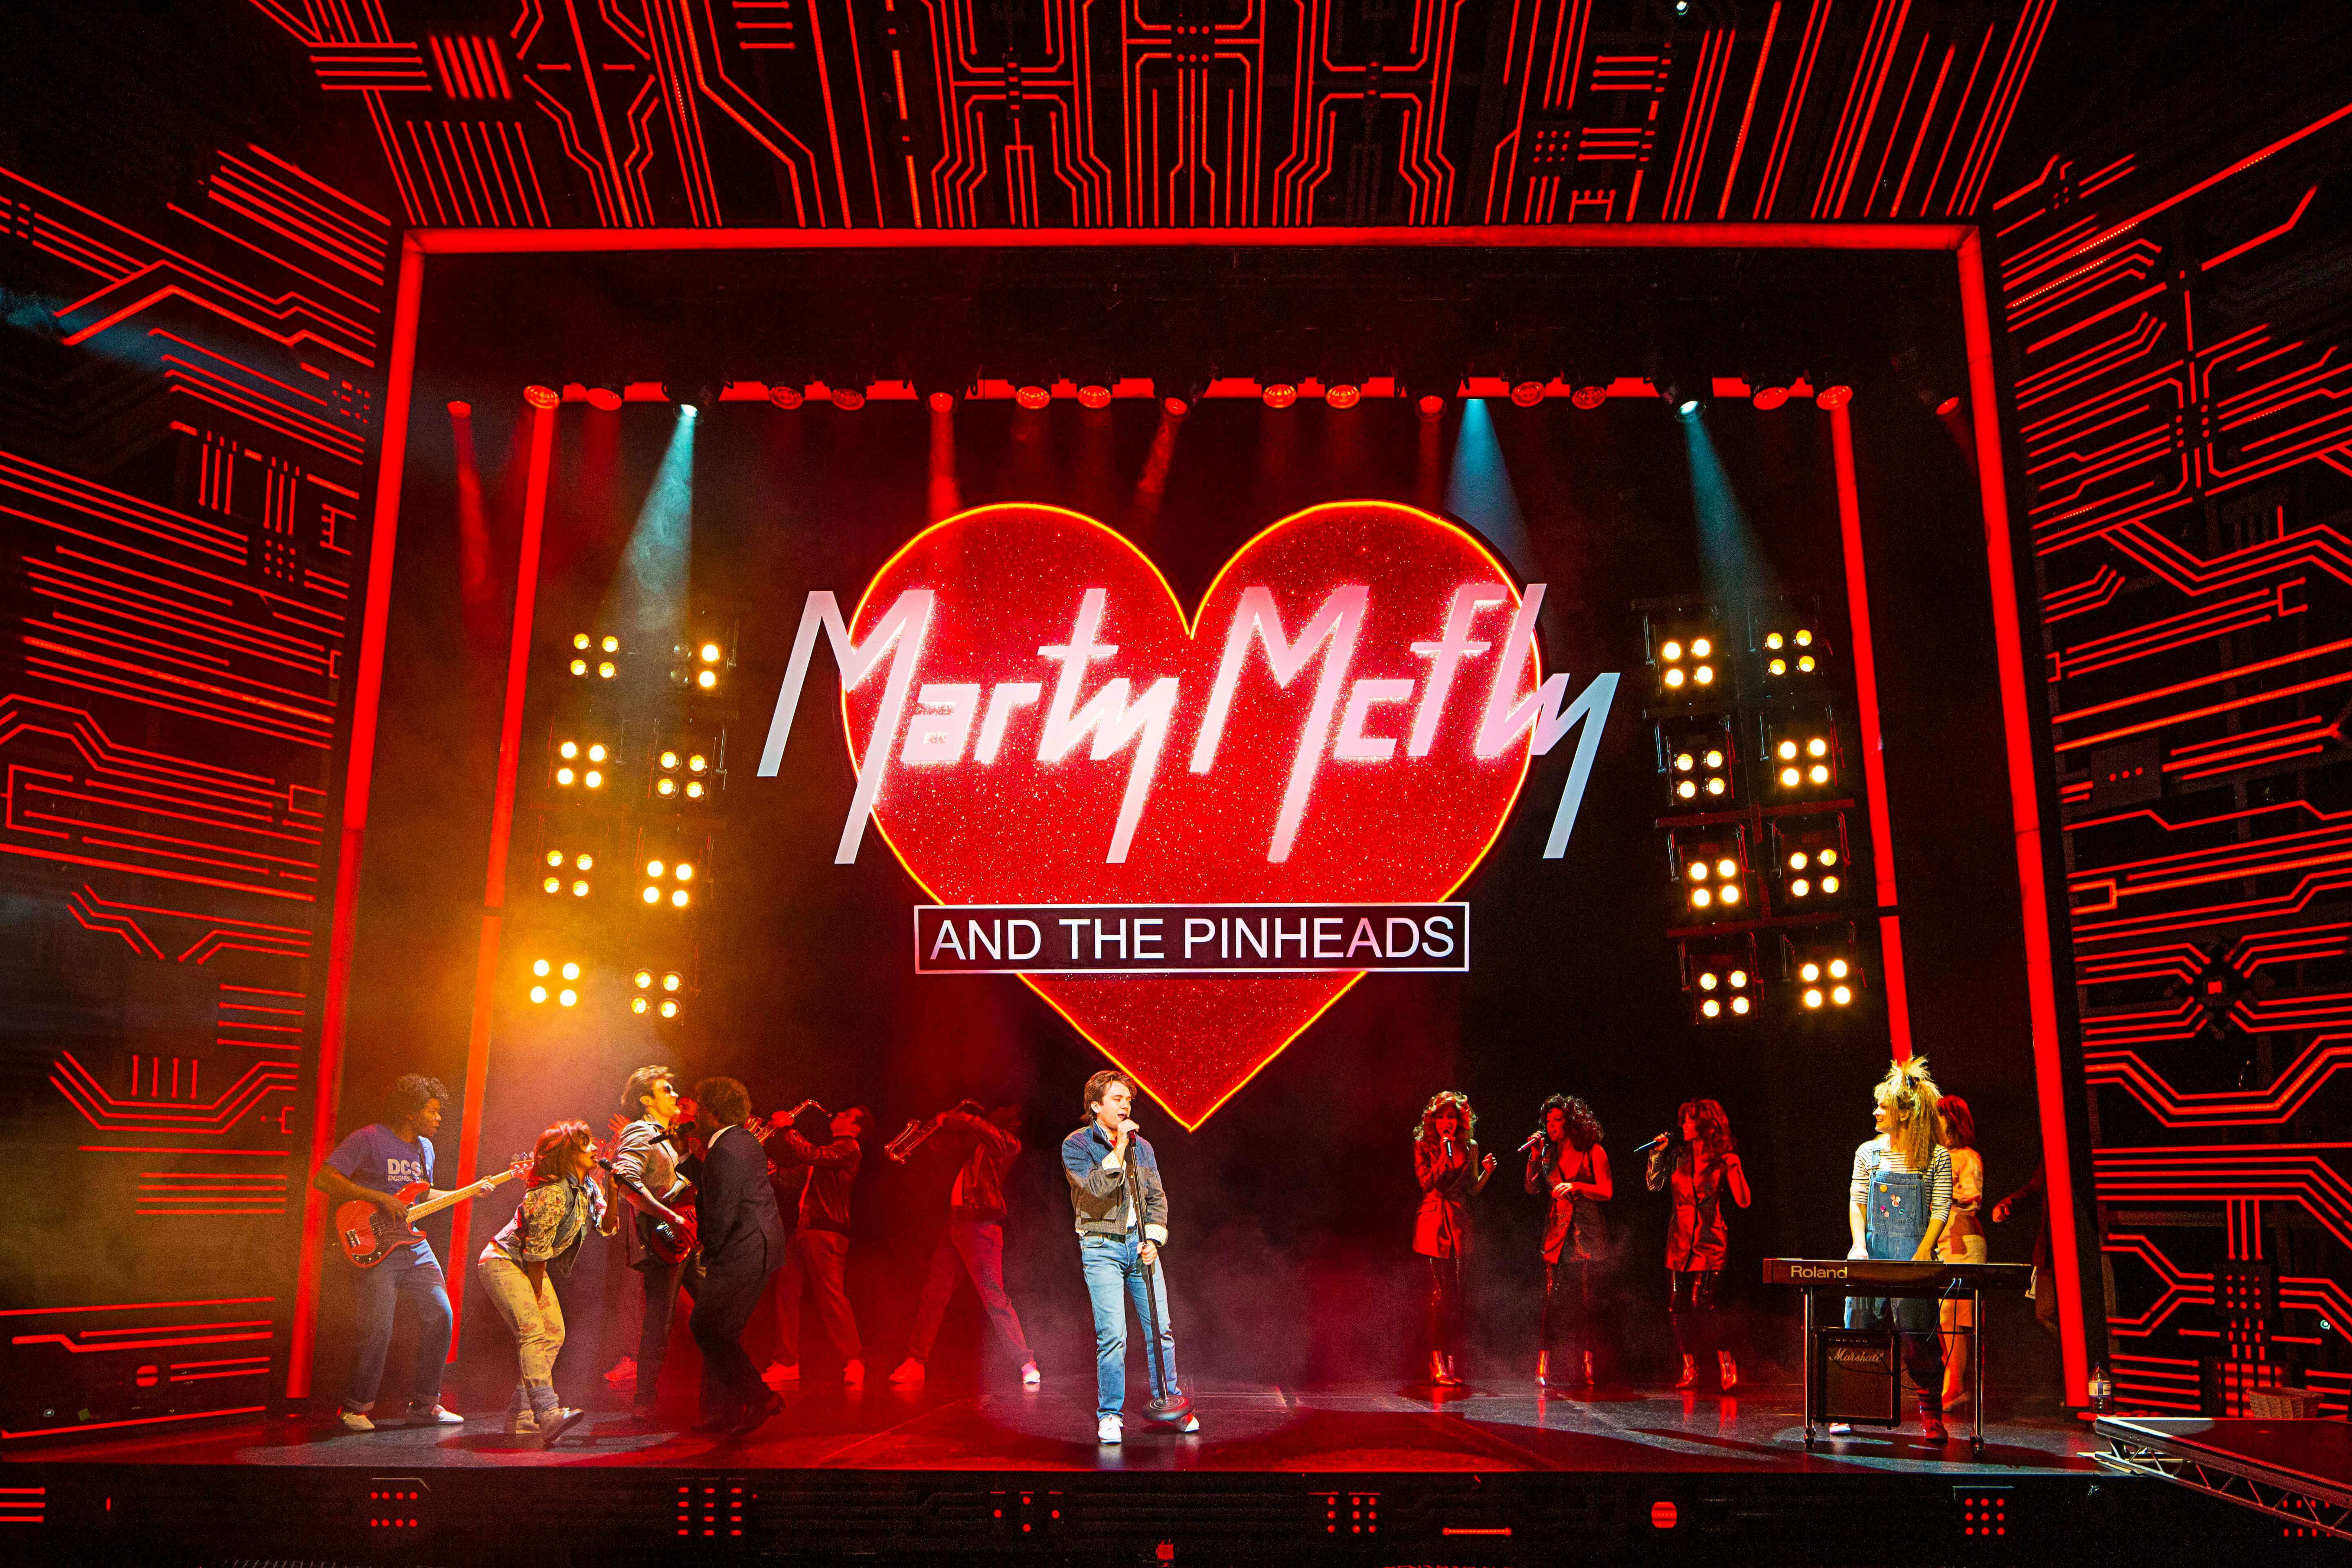 Back To The Future Is Brought To Life On Stage At This New Manchester Show